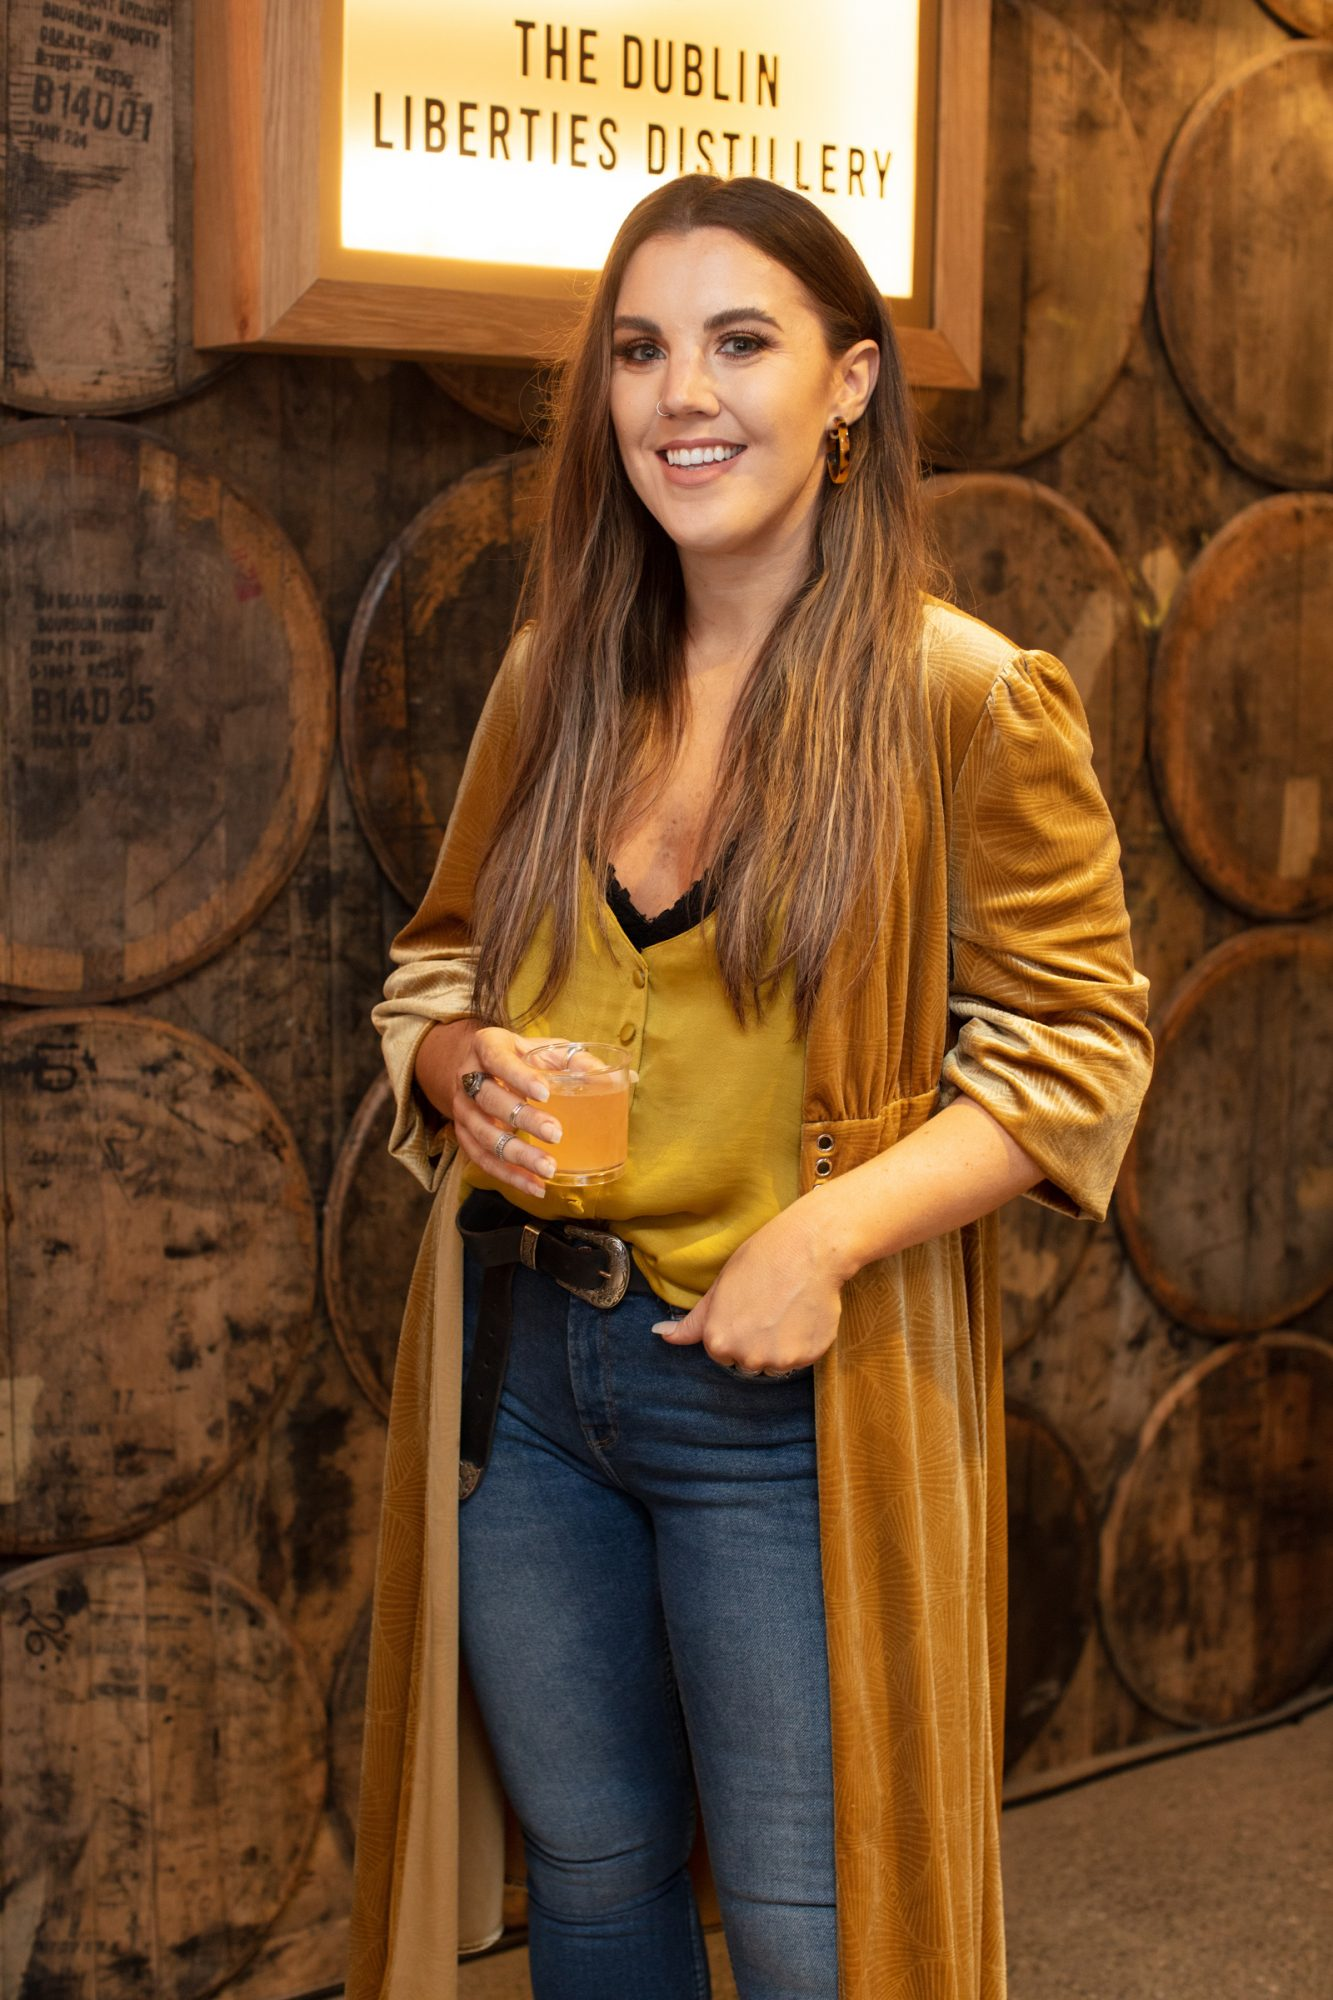 Sarah Hanrahan pictured at the preview of The Dublin Liberties Distillery, the much anticipated new craft distillery in the heart of the Liberties. Photo: Anthony Woods.